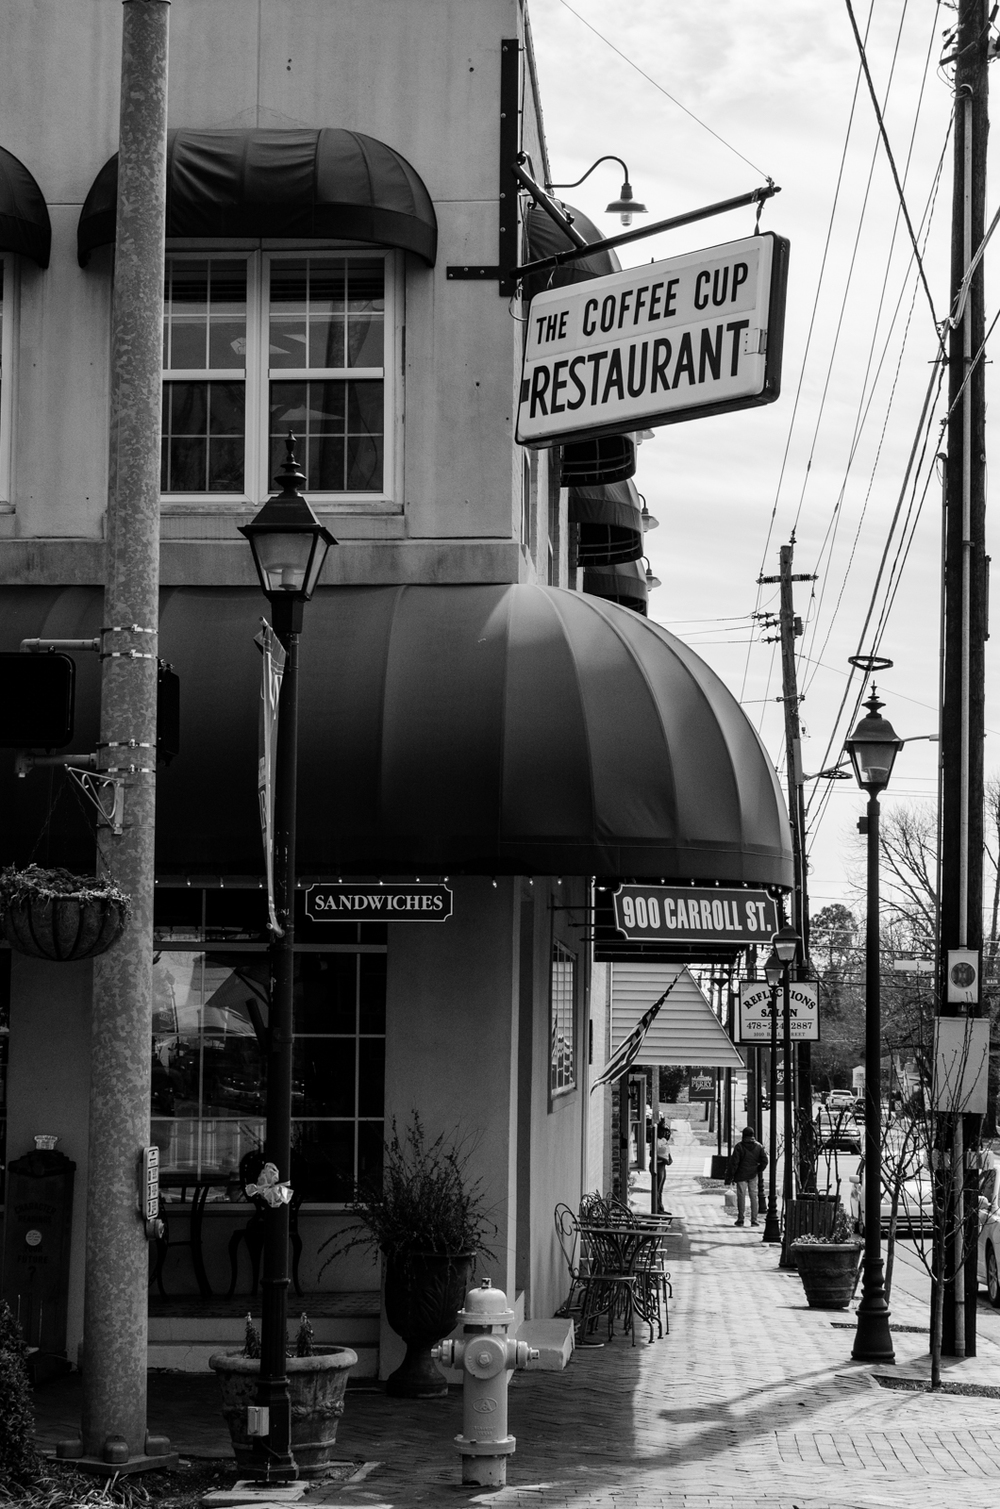 Project 365: #45 - The Coffee Cup Restaurant